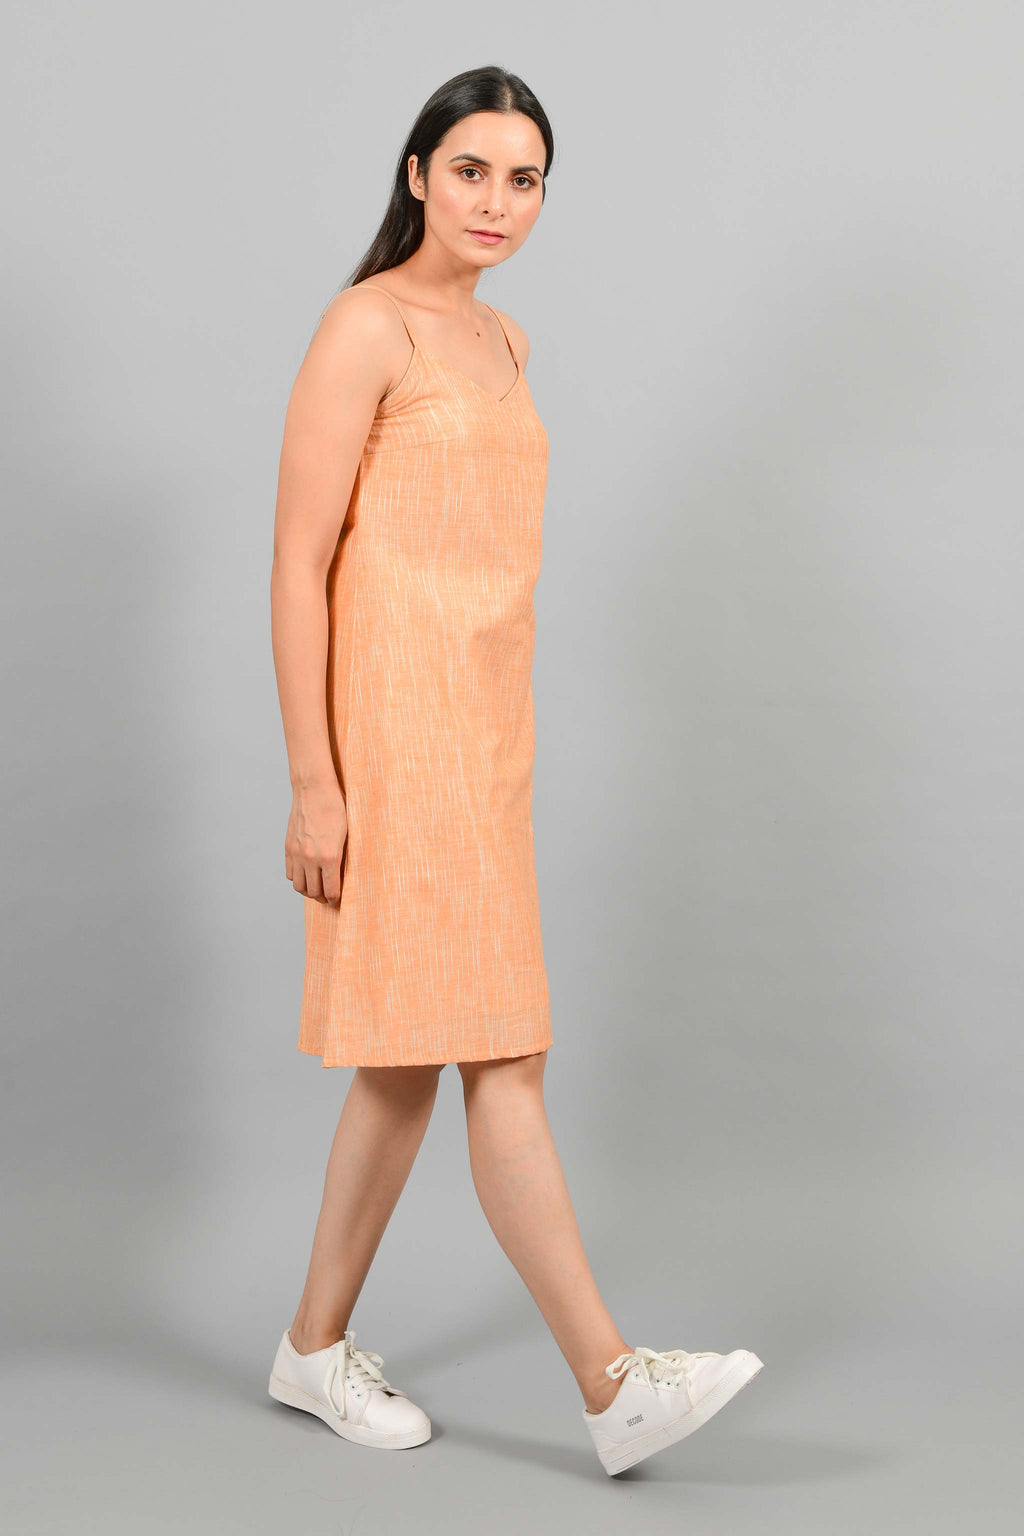 Stylised side pose of an Indian female womenswear fashion model in an orange space dyed handspun and handwoven khadi cotton spaghetti dress by Cotton Rack.